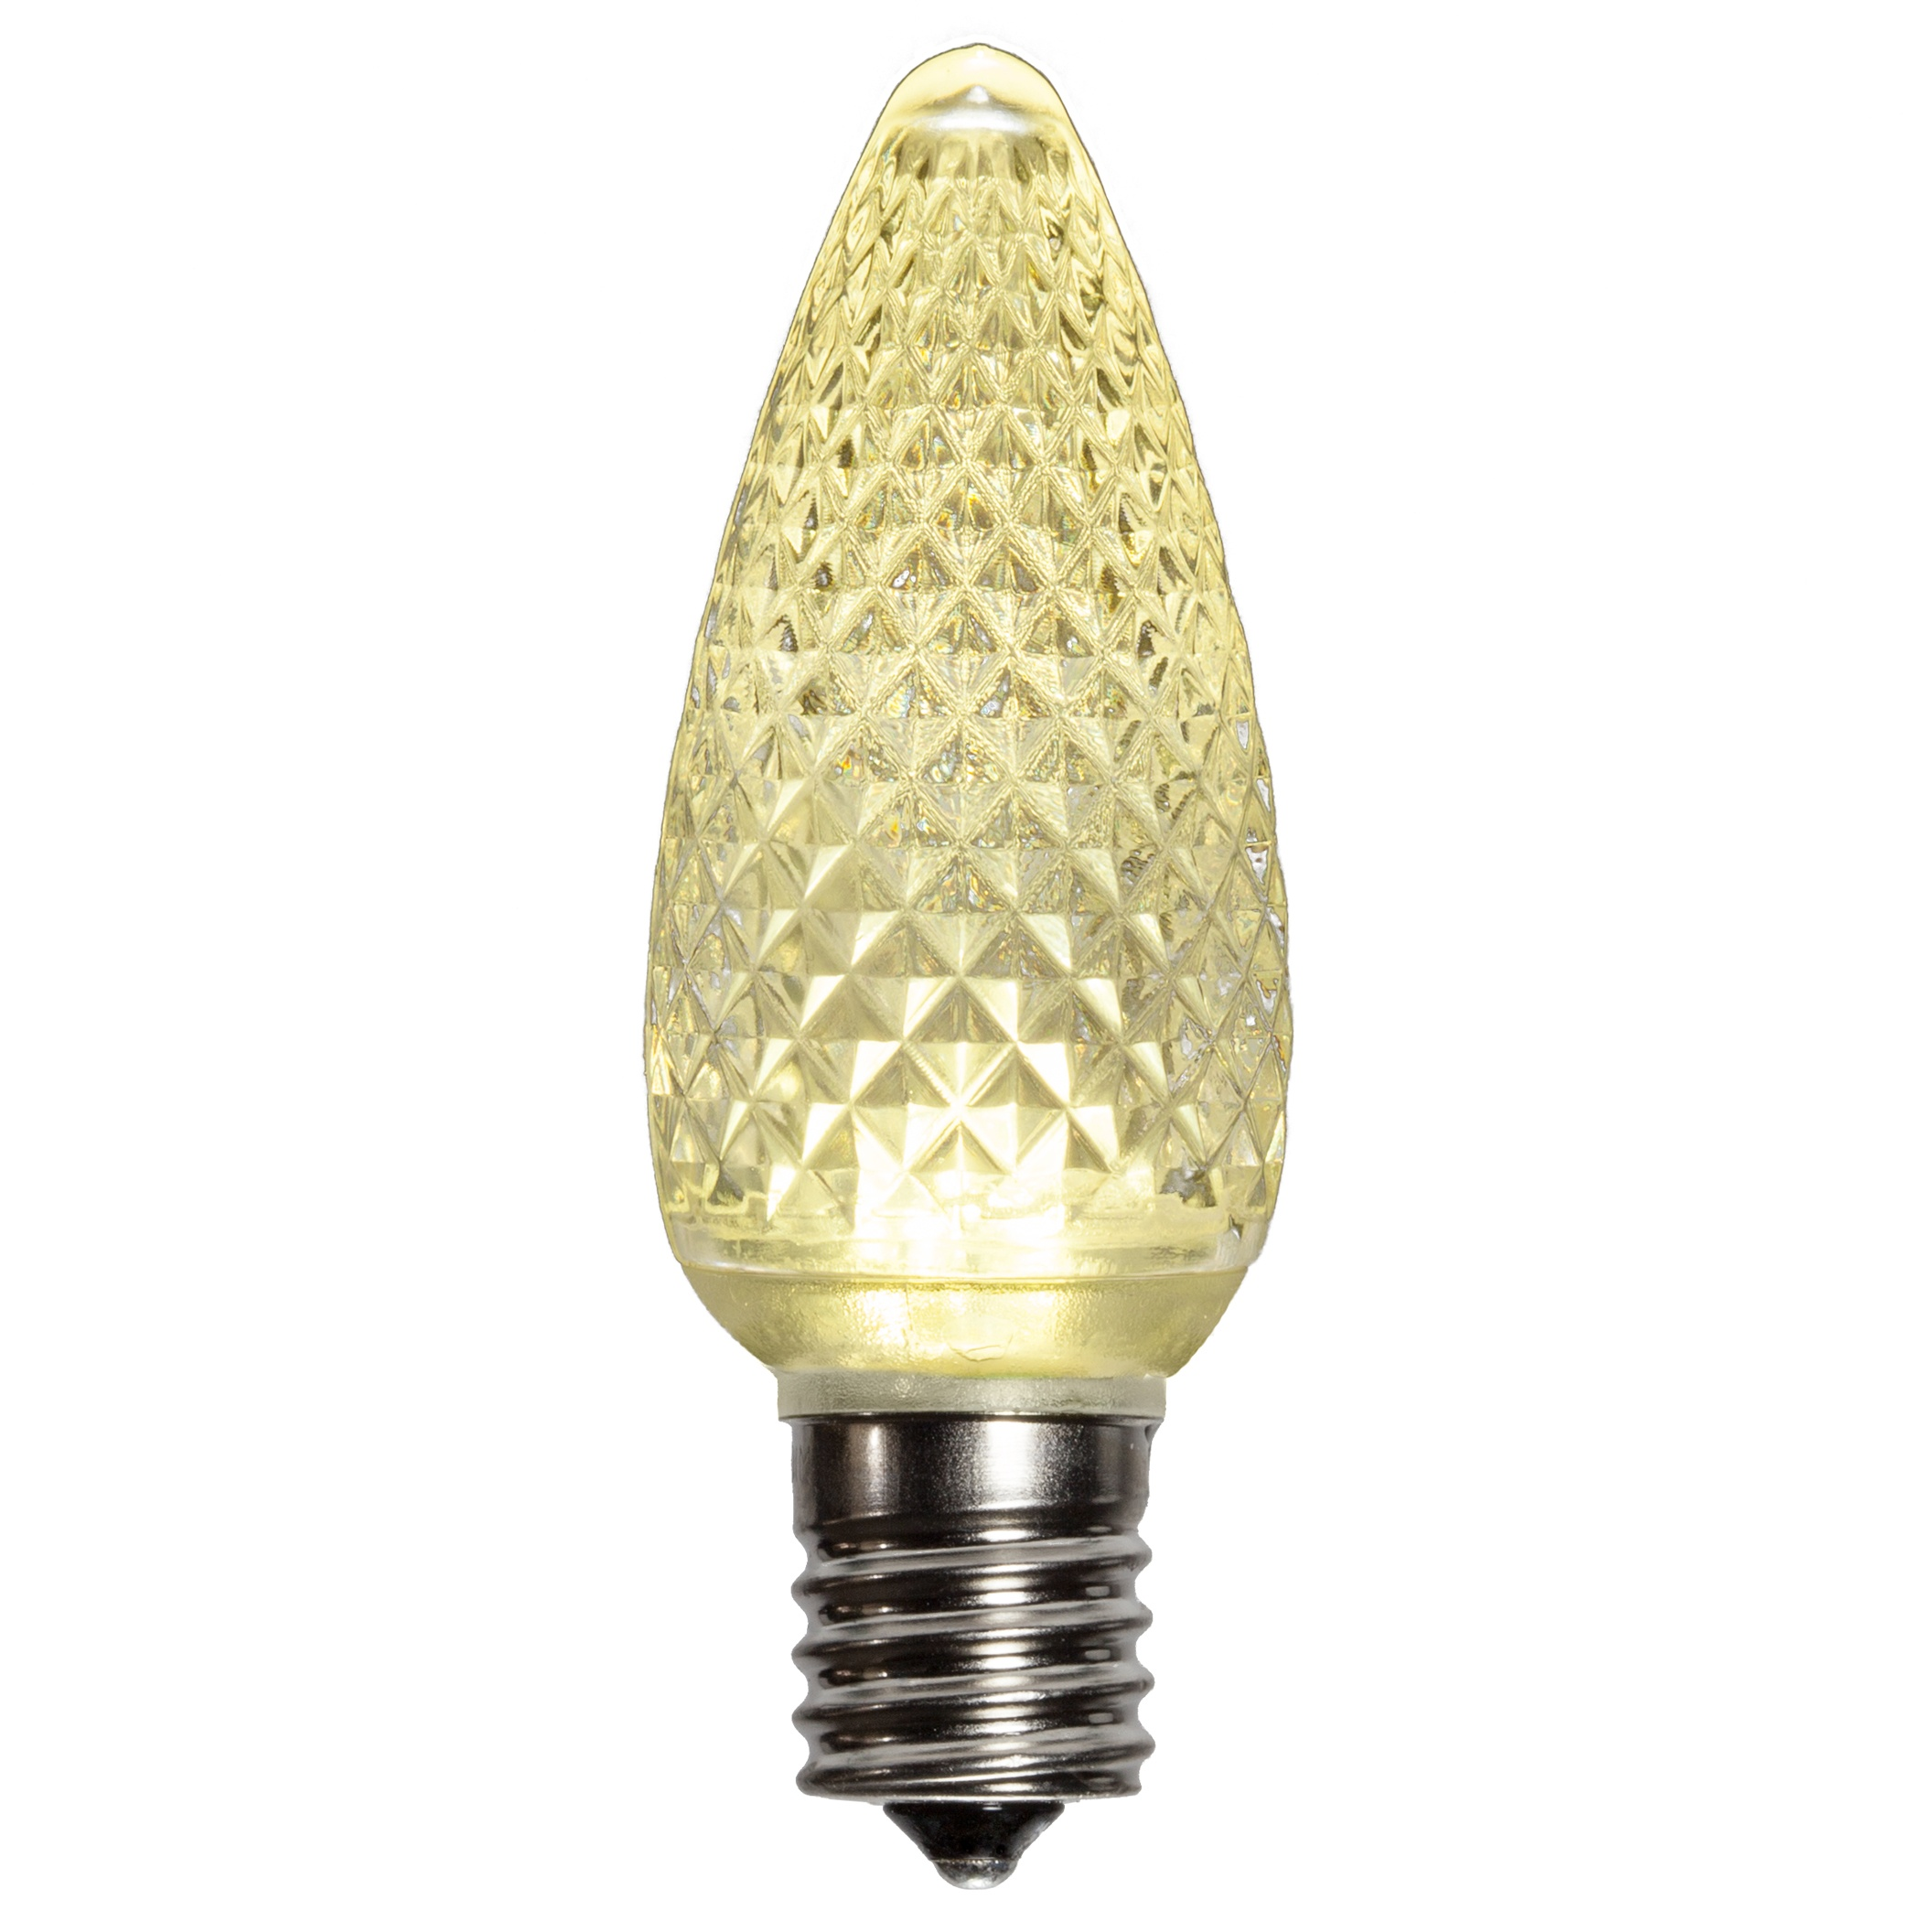 Led Christmas Light Replacement Bulbs